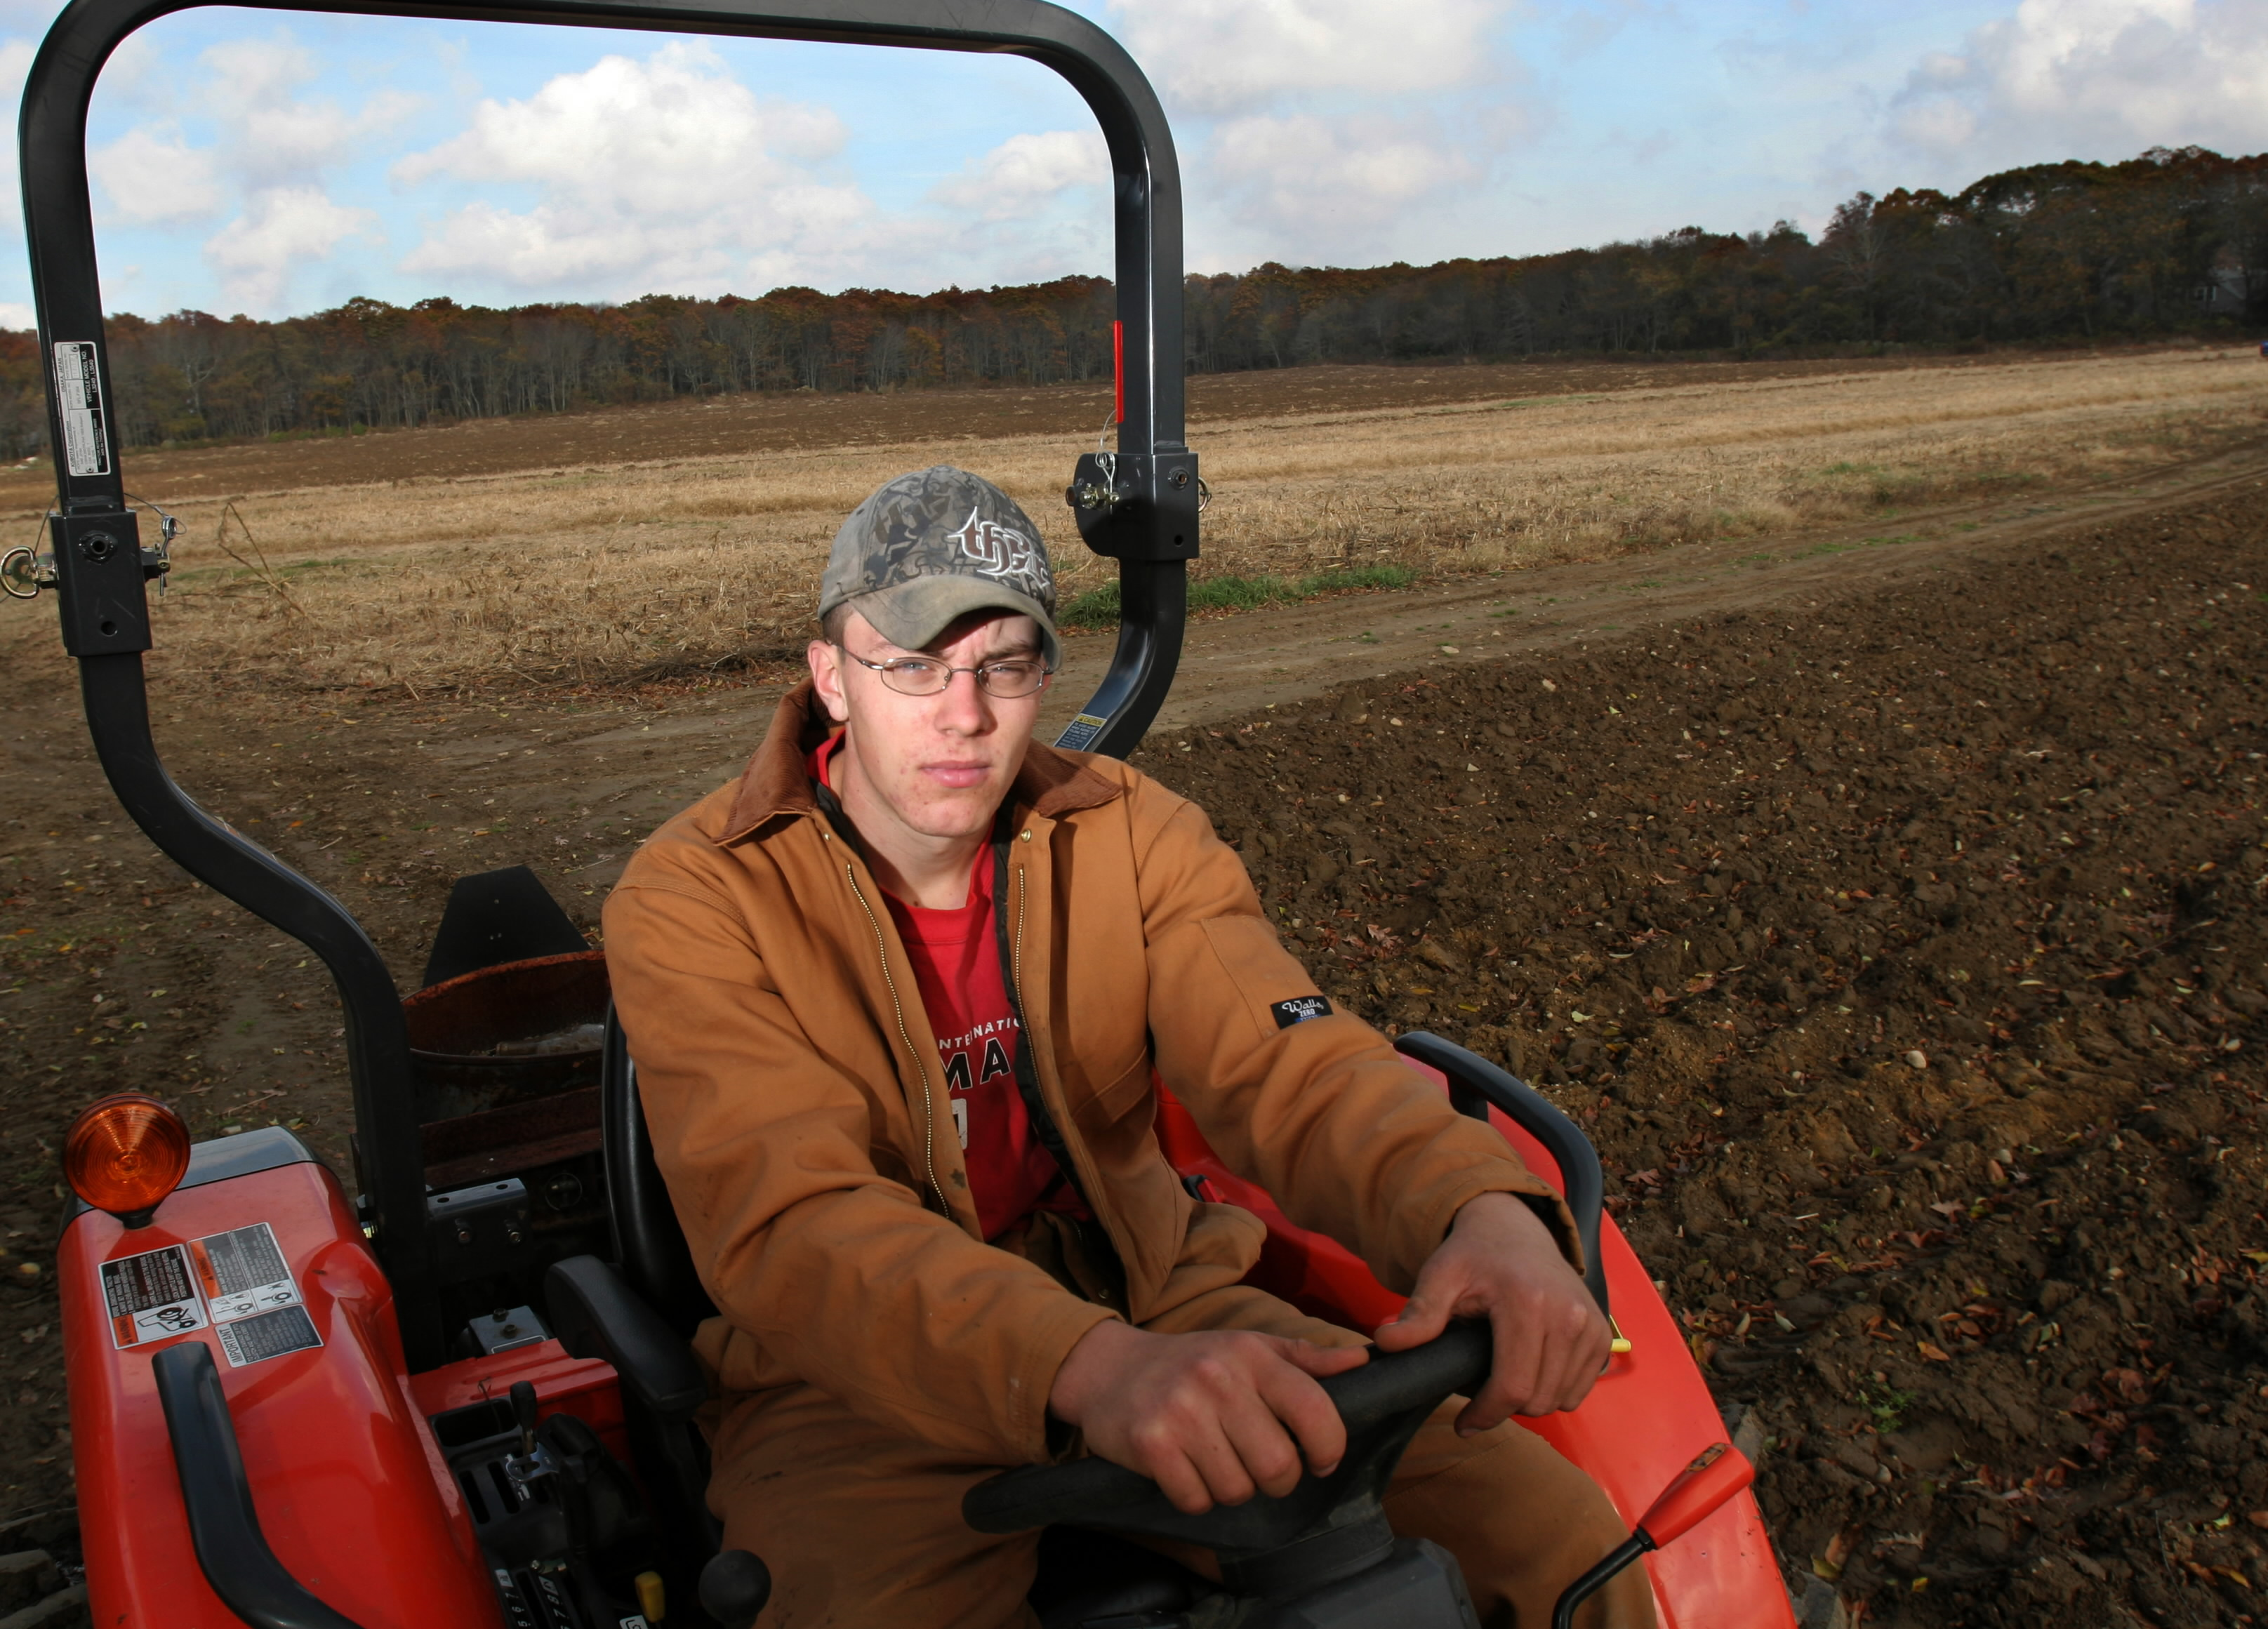 Eighteen-year-old farmer Andrew Orr bought a farm in Westport, and grows corn and other vegetables rather than attending college.